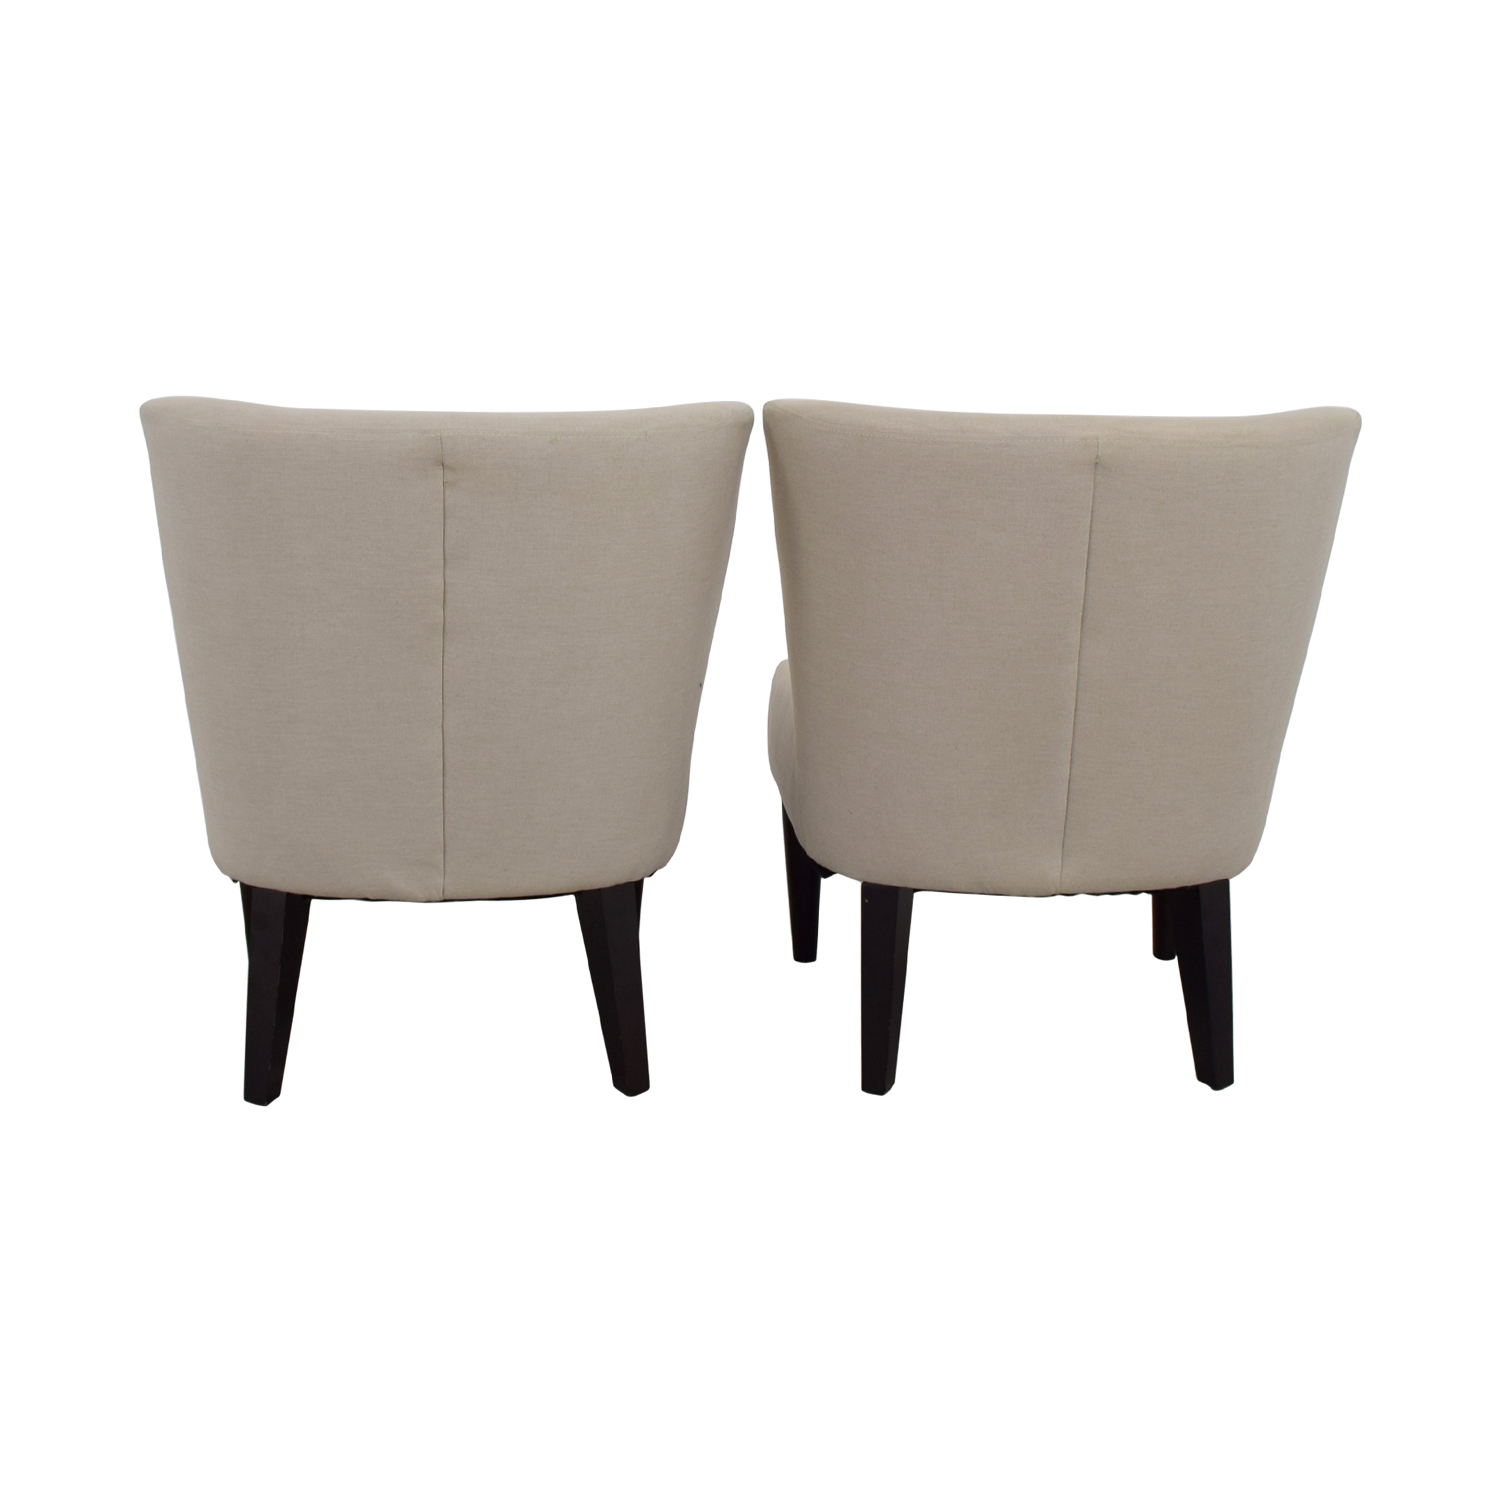 West Elm West Elm Retro Cream Chairs second hand